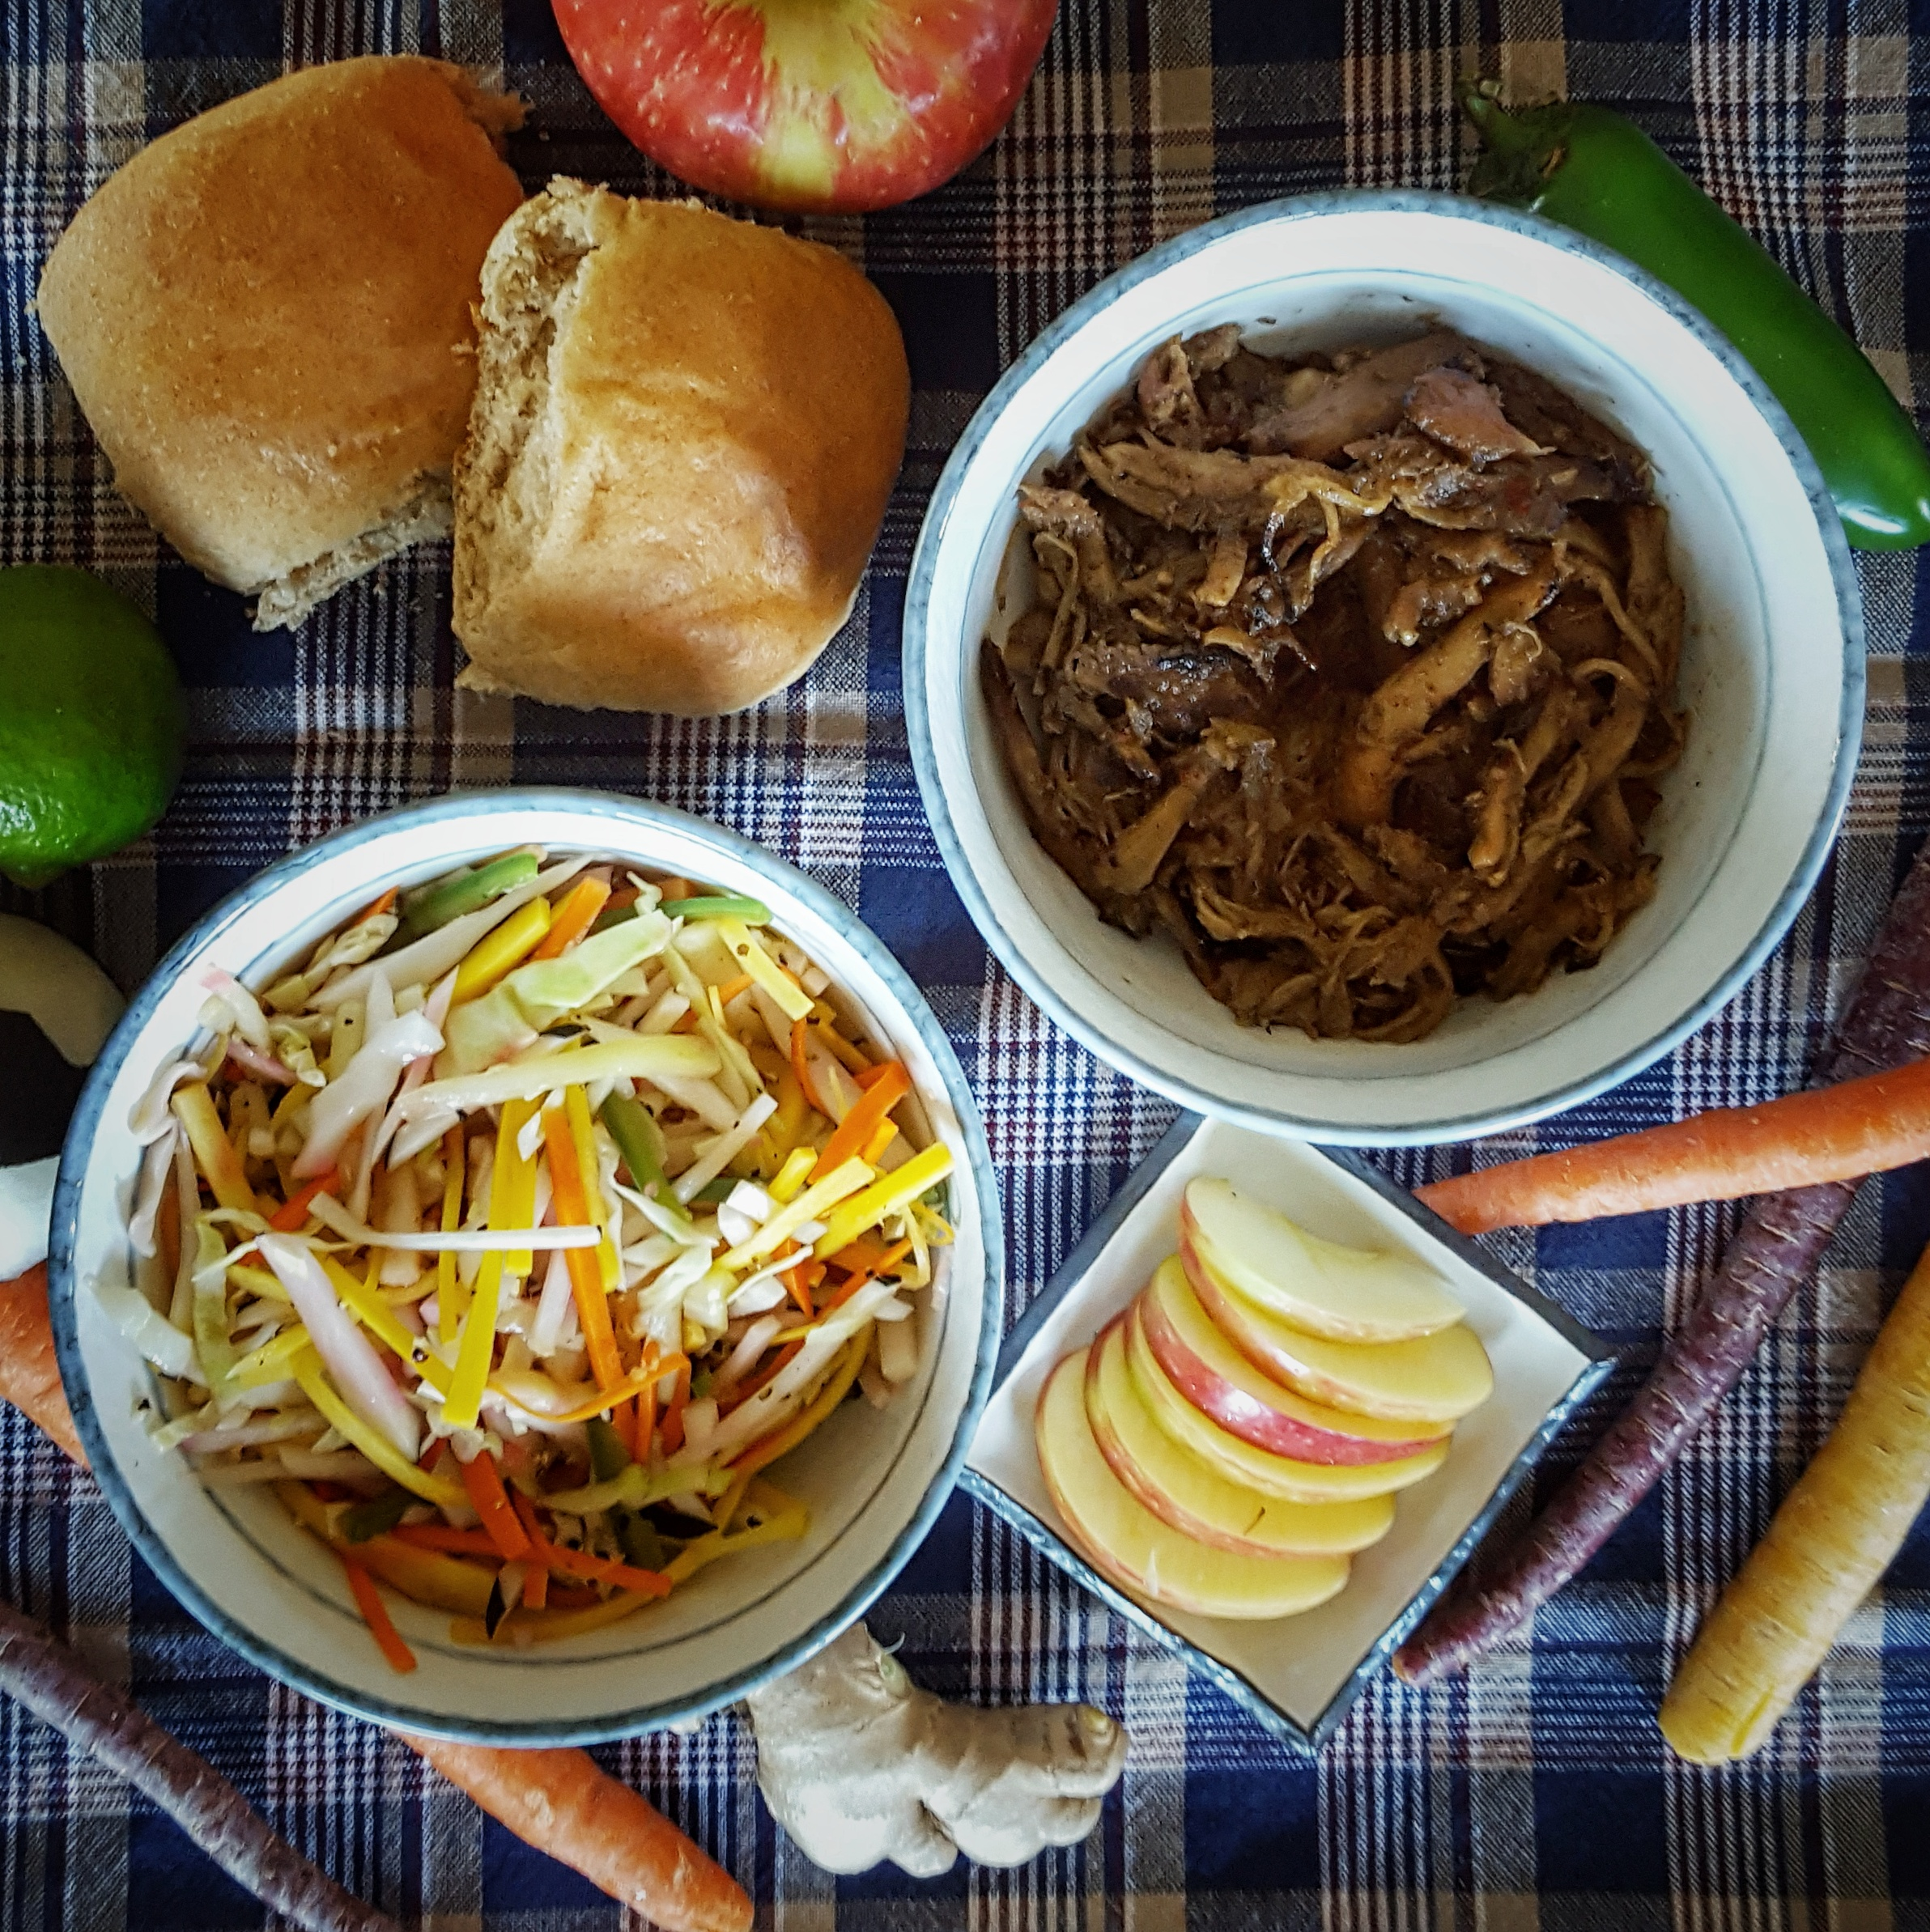 Simply Sophisticated Cooking | Slowed Cooked Chinese Five Spice Shredded Chicken Sliders with Apple Slices and Carrot, Black Radish and Jalapeno Slaw